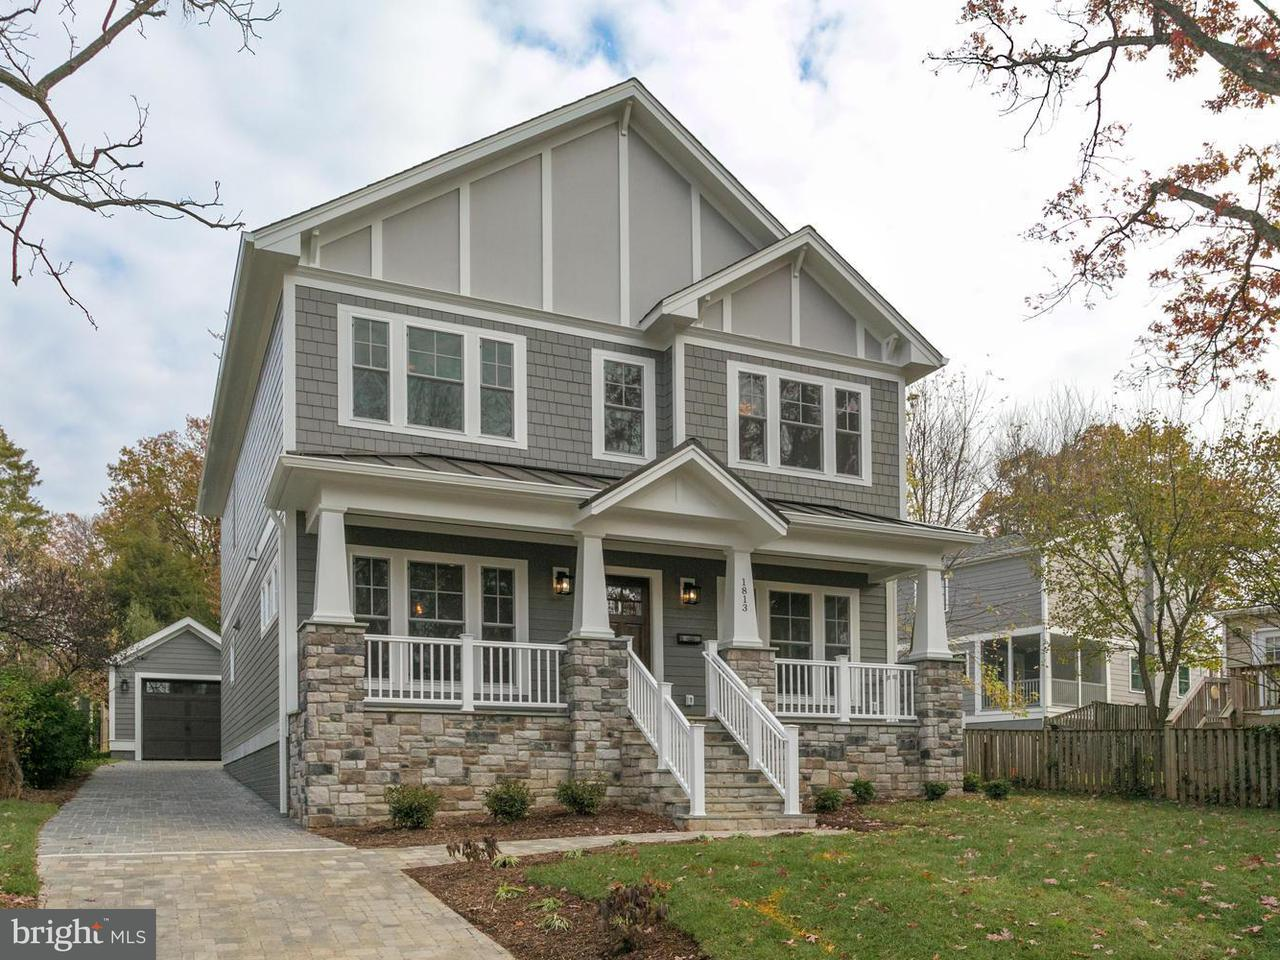 Single Family for Sale at 1813 Quantico St N Arlington, Virginia 22205 United States